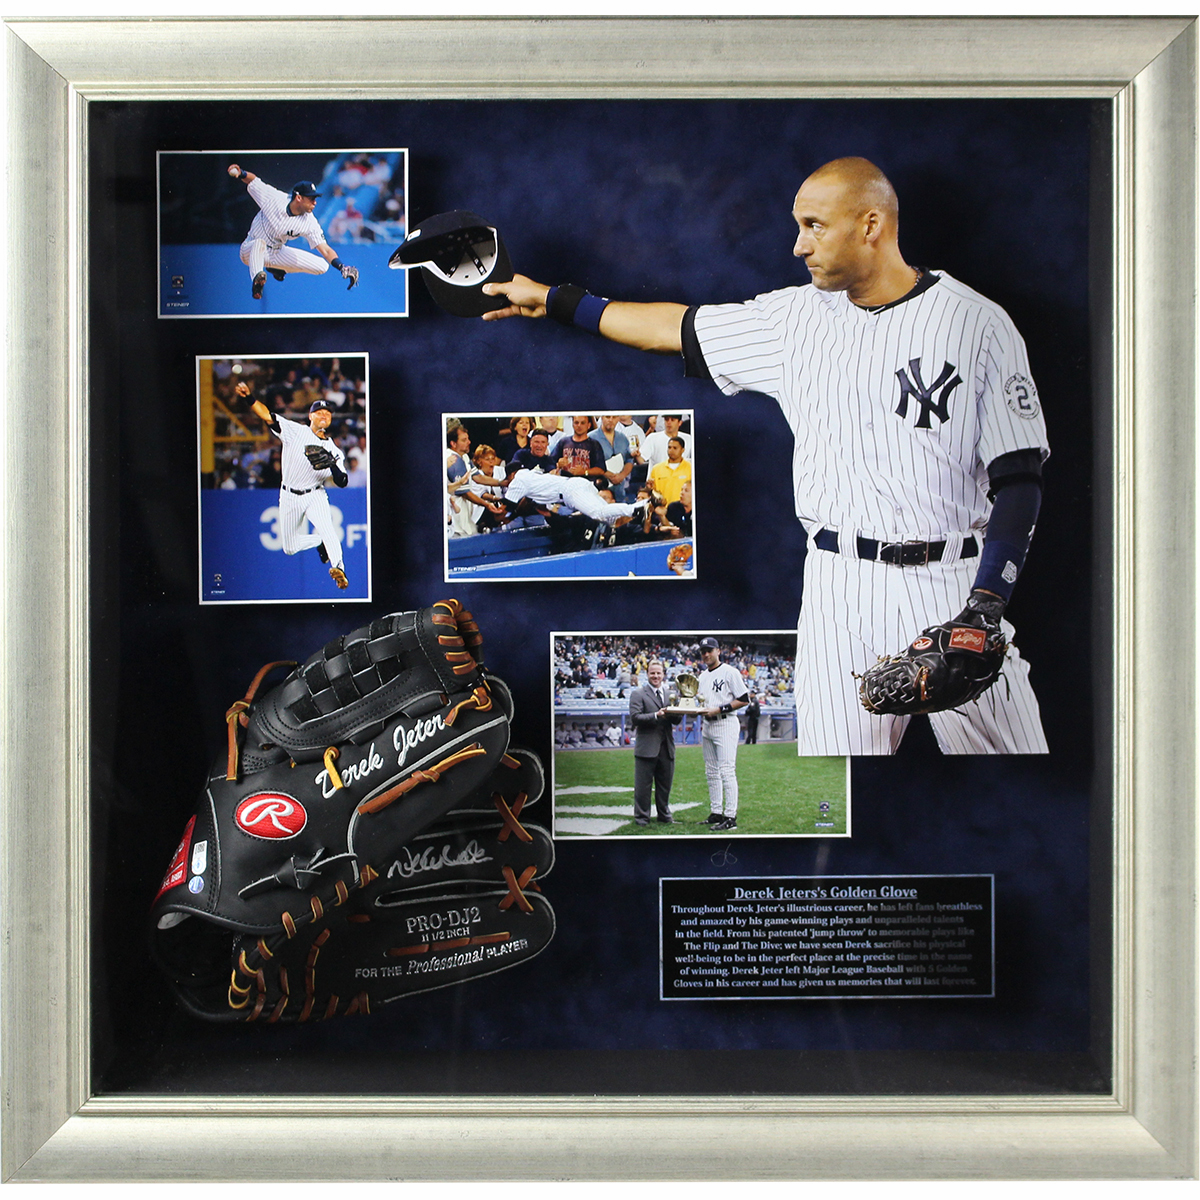 Derek Jeter Signed Rawlings Fielding Glove 24x24 Framed Collage LE of 22